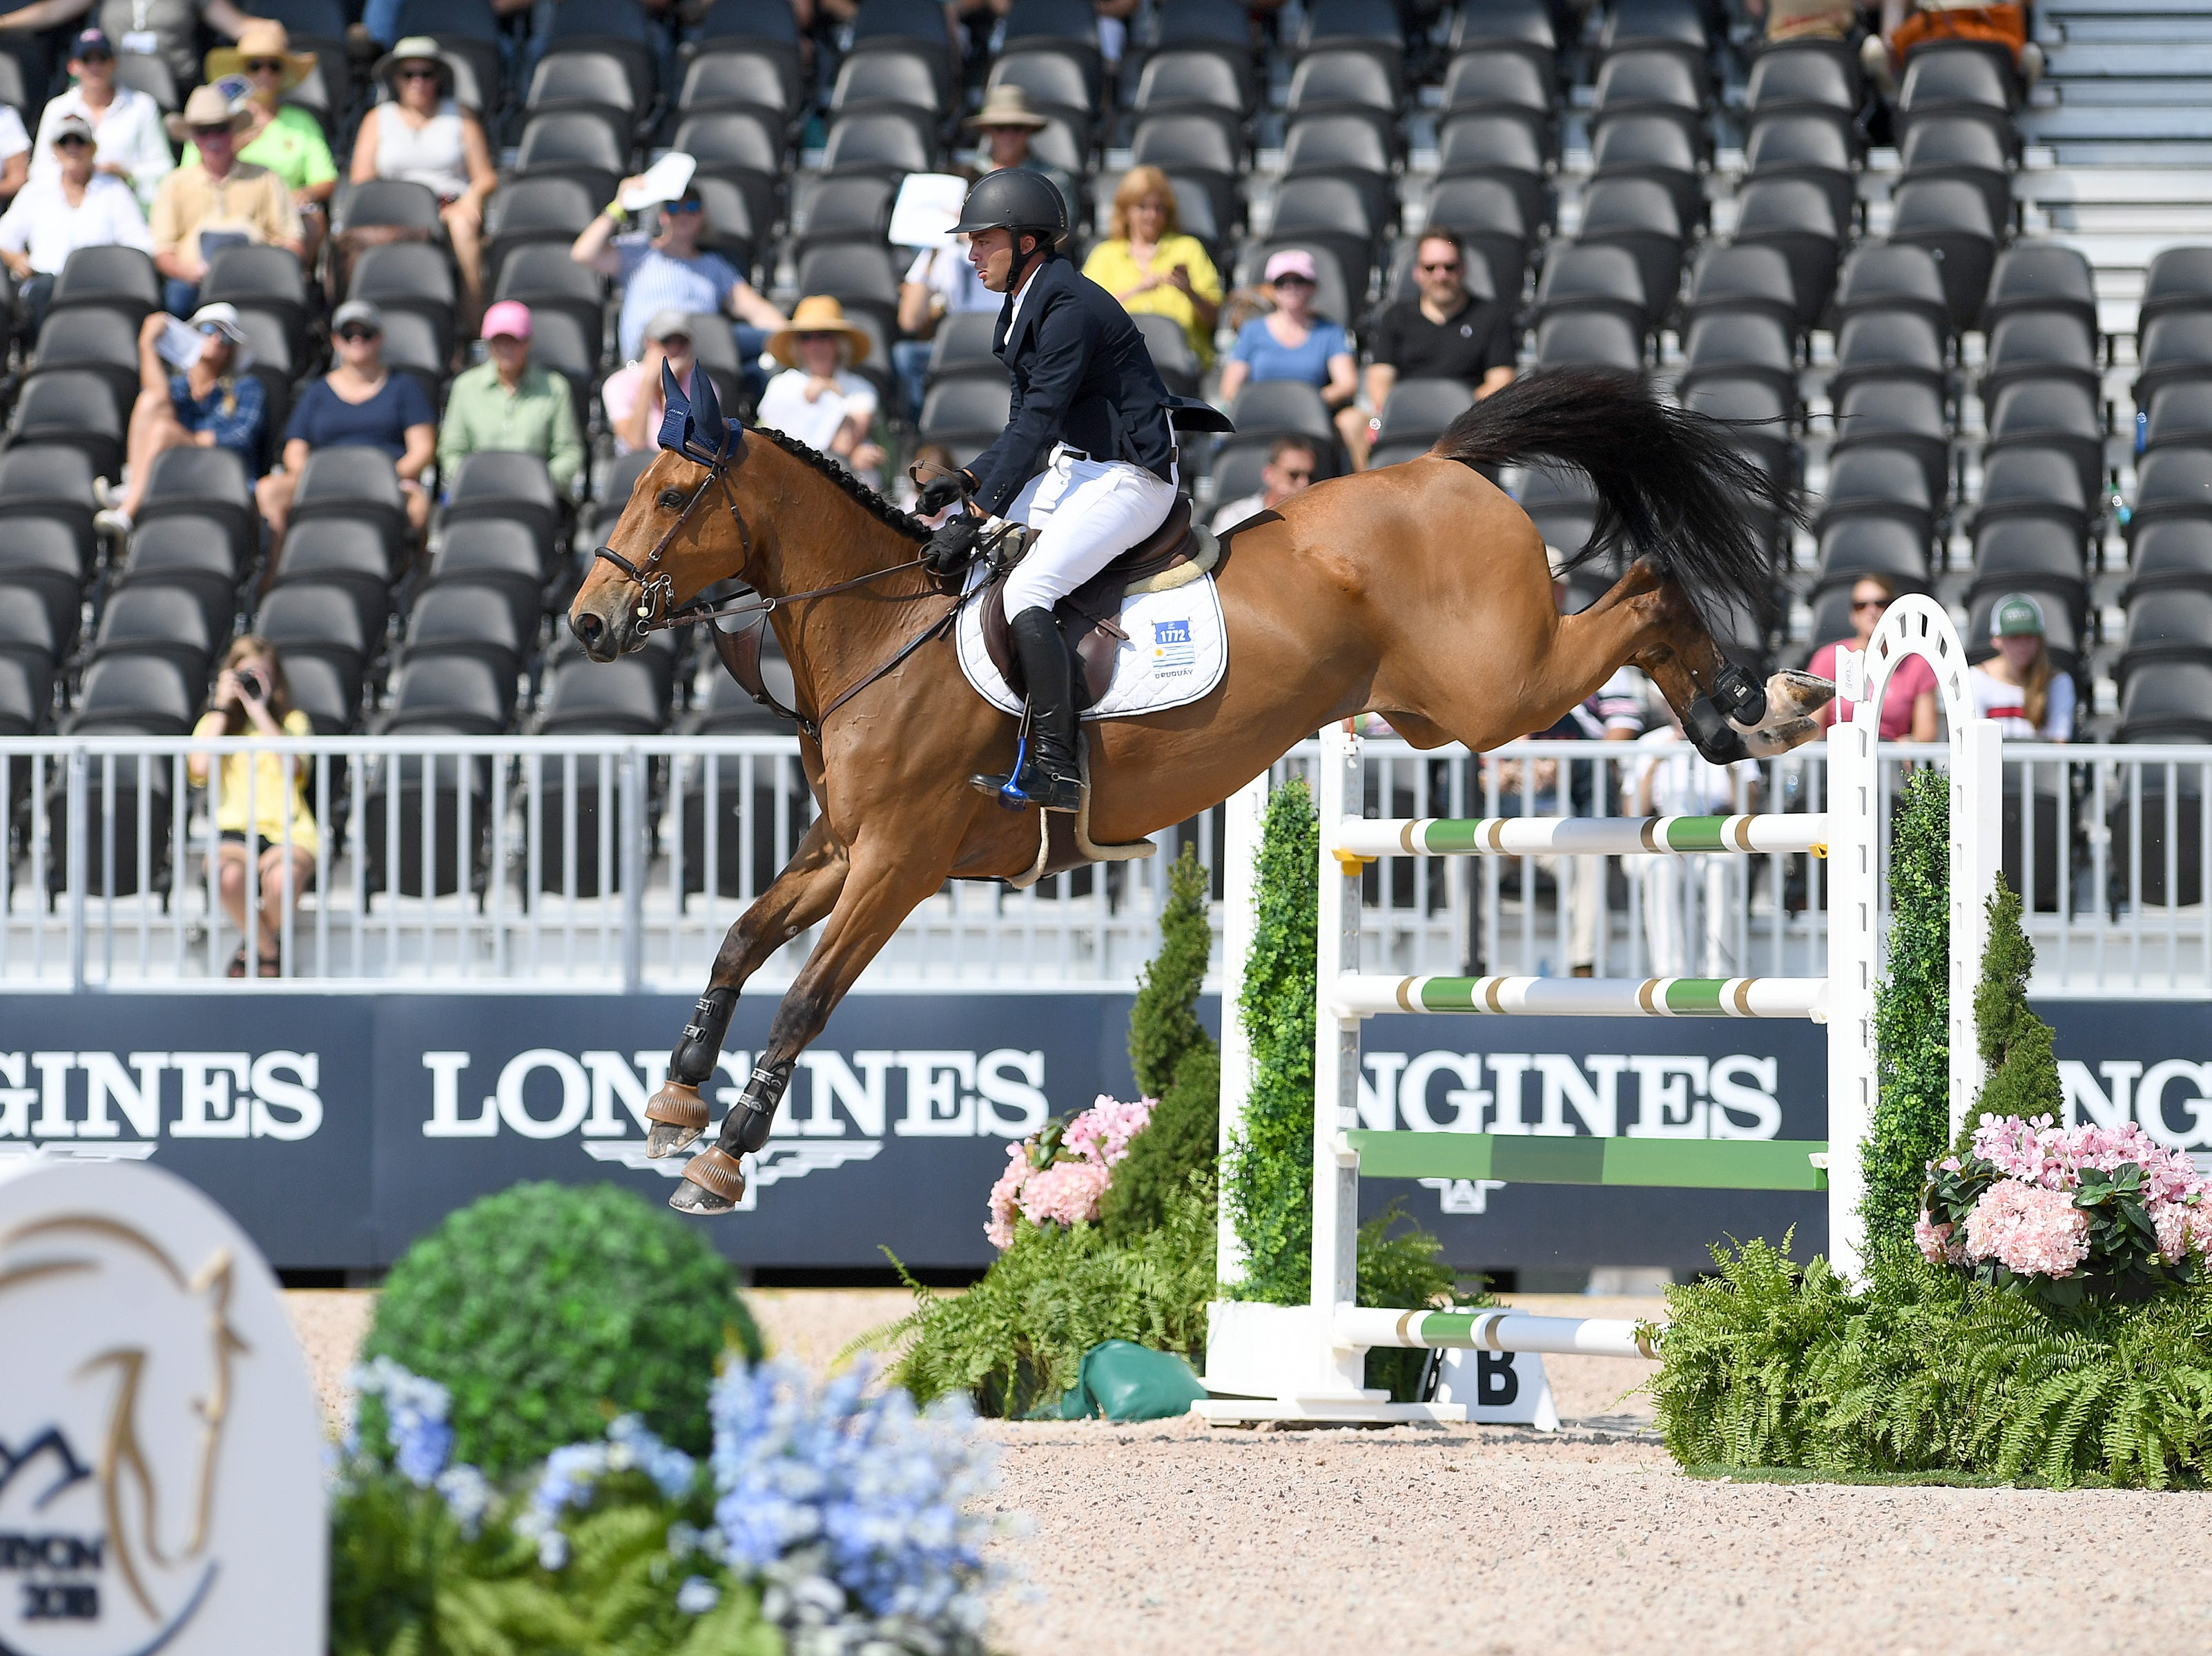 Uruguay's Marcelo Chirico Ferreira, on QH Baloudarc LF, competes in the team jumping competition of the FEI World Equestrian Games at the Tryon International Equestrian Center on Sept. 20, 2018.